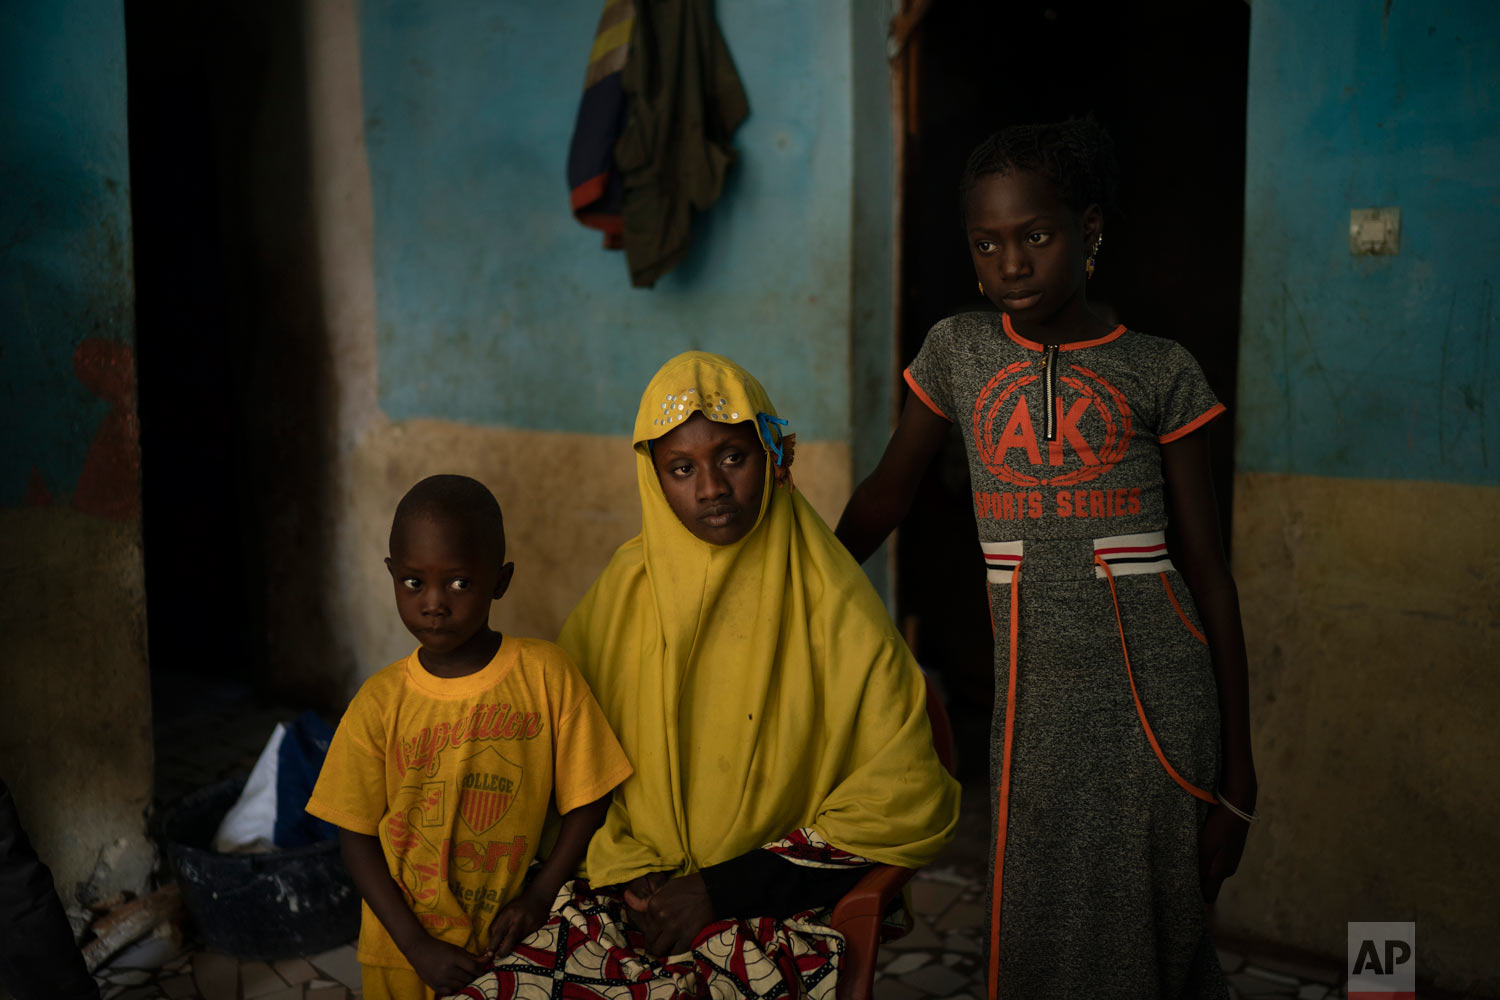 Mariama Konte, 20, sits with her daughter Maimouna, 7, and her son Ibrahima, 4, inside their home on Nov. 24, 2018, in a village near Goudiry, Senegal. Konte, who married Abdrahamane when she was 12 and he was 21, is living the consequences of the family's decision in November to mourn him after nearly four years of waiting. (AP Photo/Felipe Dana)